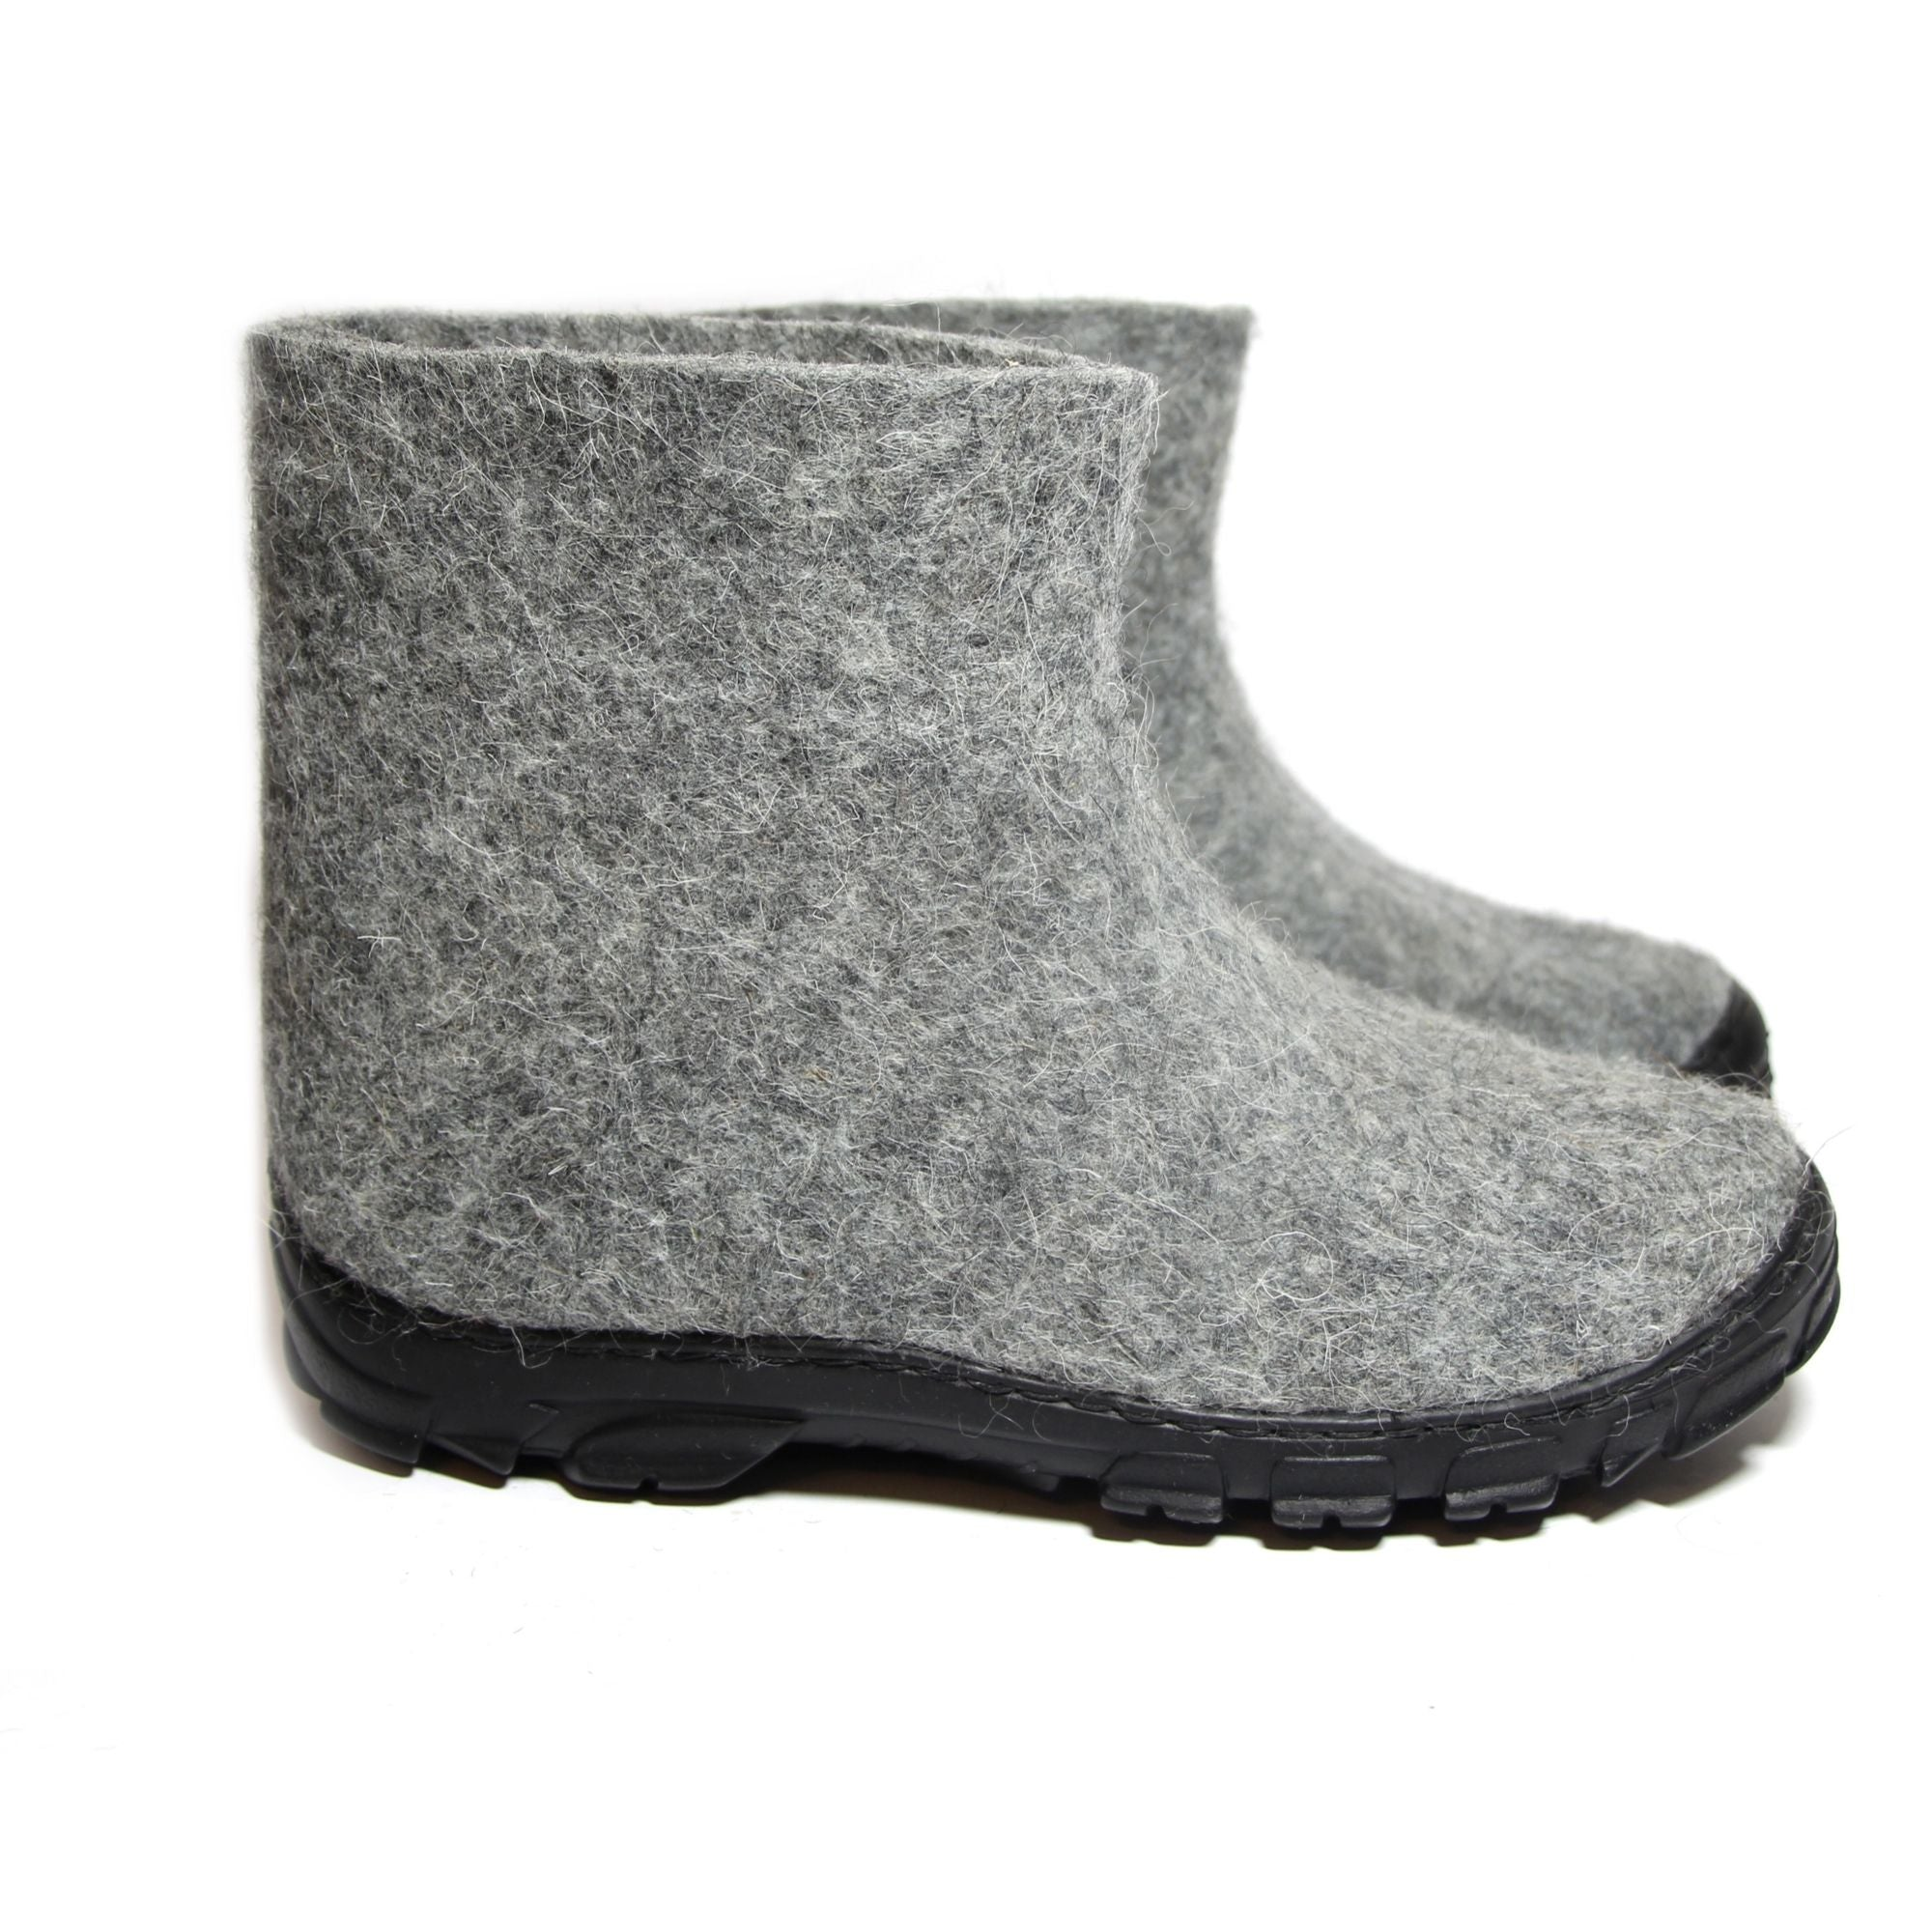 Outdoor Felt Ankle Boots Men Organic Gray - WOOLWALKER